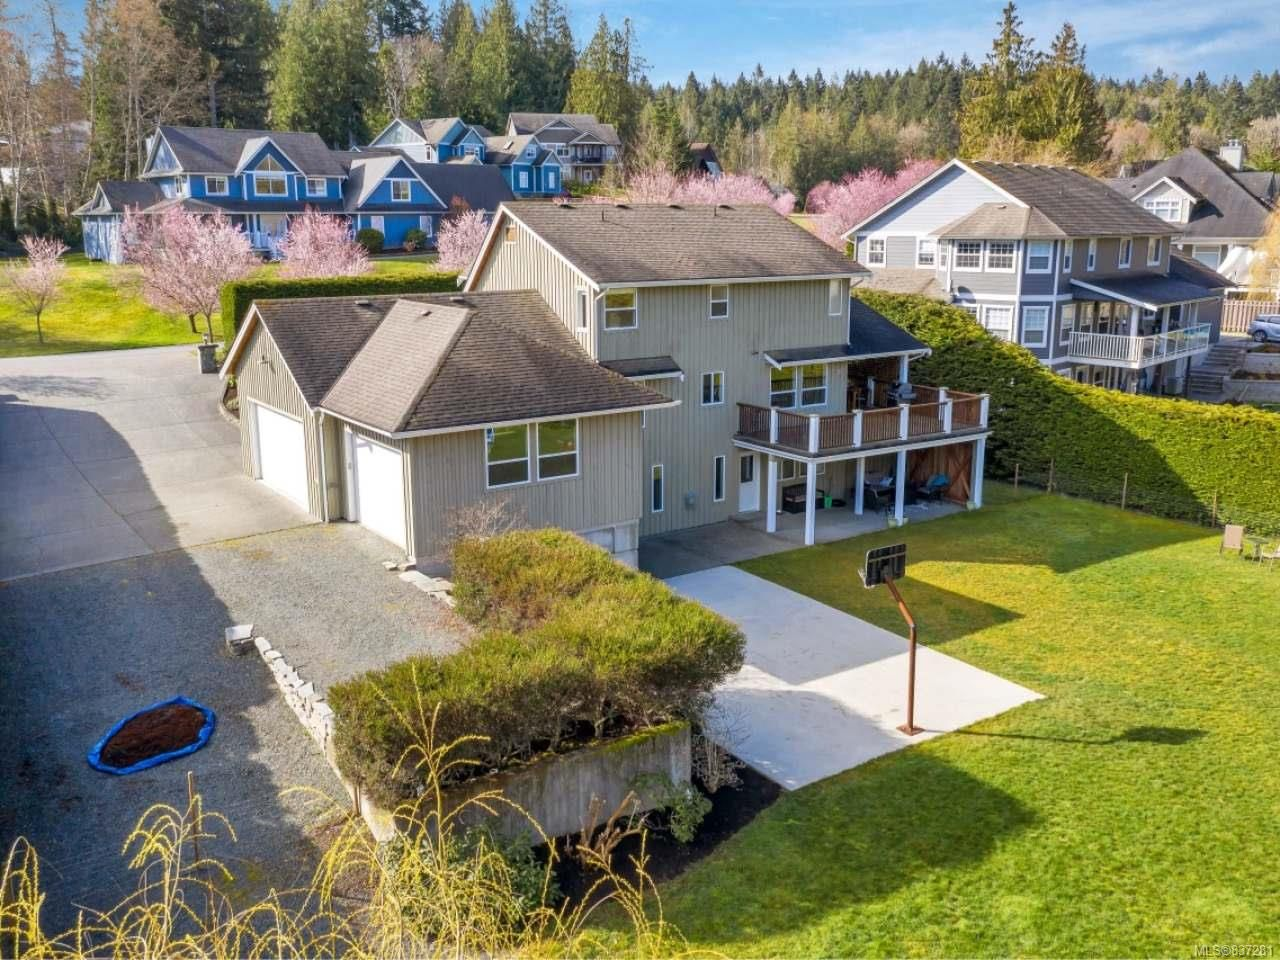 Photo 43: Photos: 925 Lilmac Rd in MILL BAY: ML Mill Bay House for sale (Malahat & Area)  : MLS®# 837281